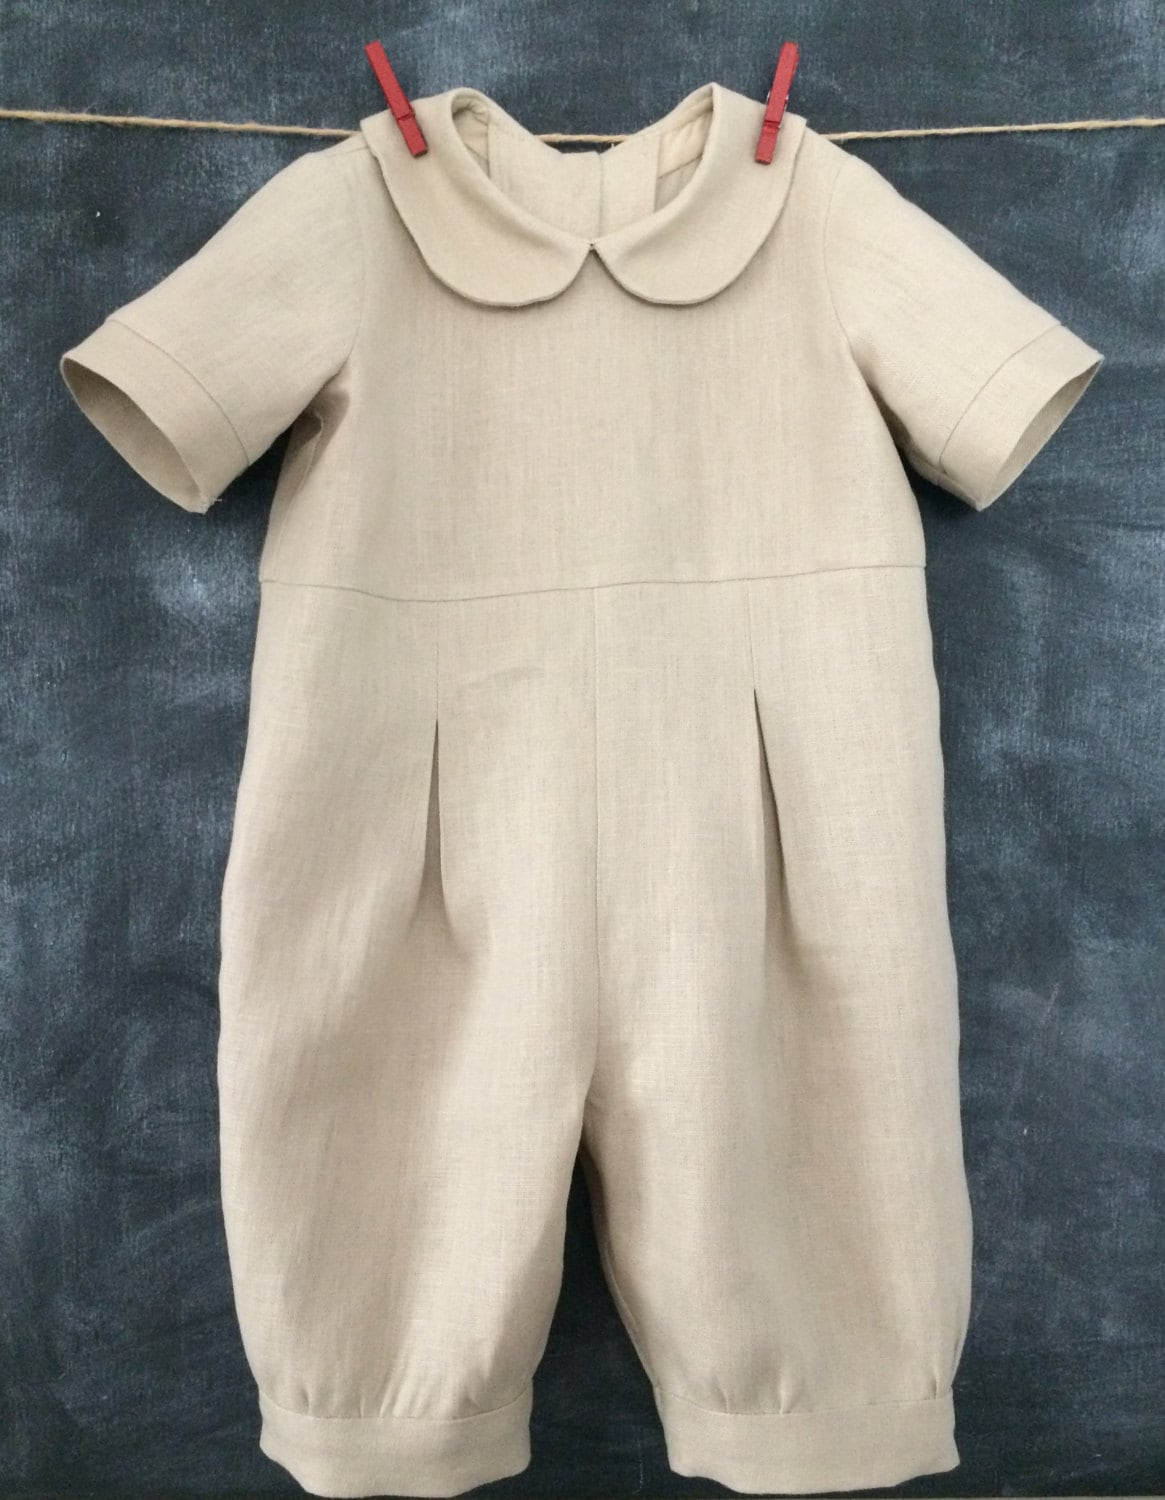 Babies will feel cool and comfortable in this practical summer romper suit.